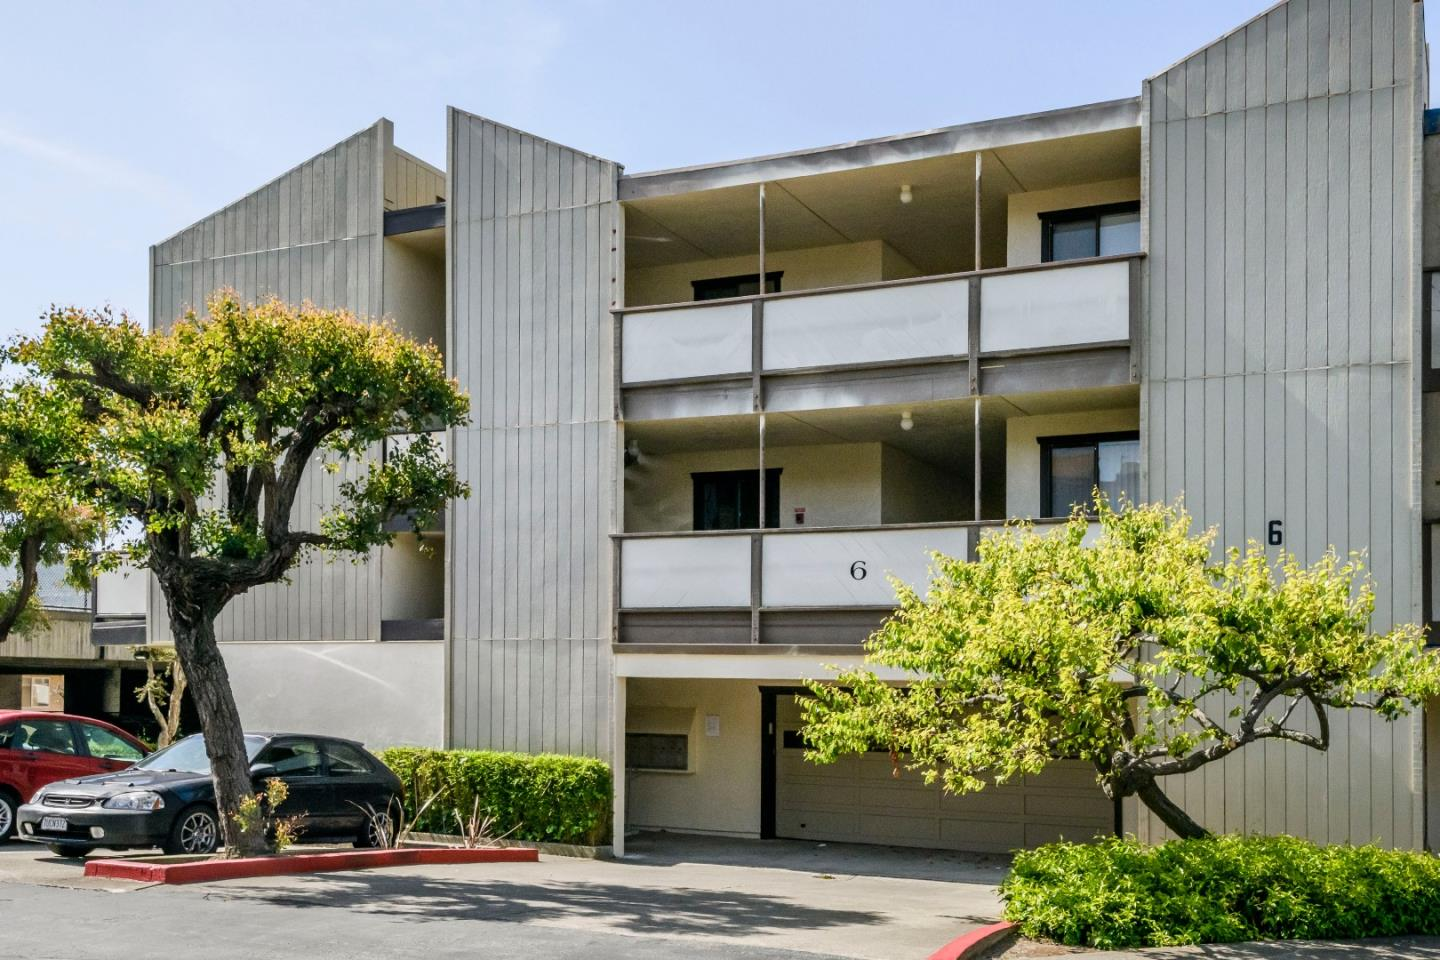 Image for 622 Brosnan Court, <br>South San Francisco 94080